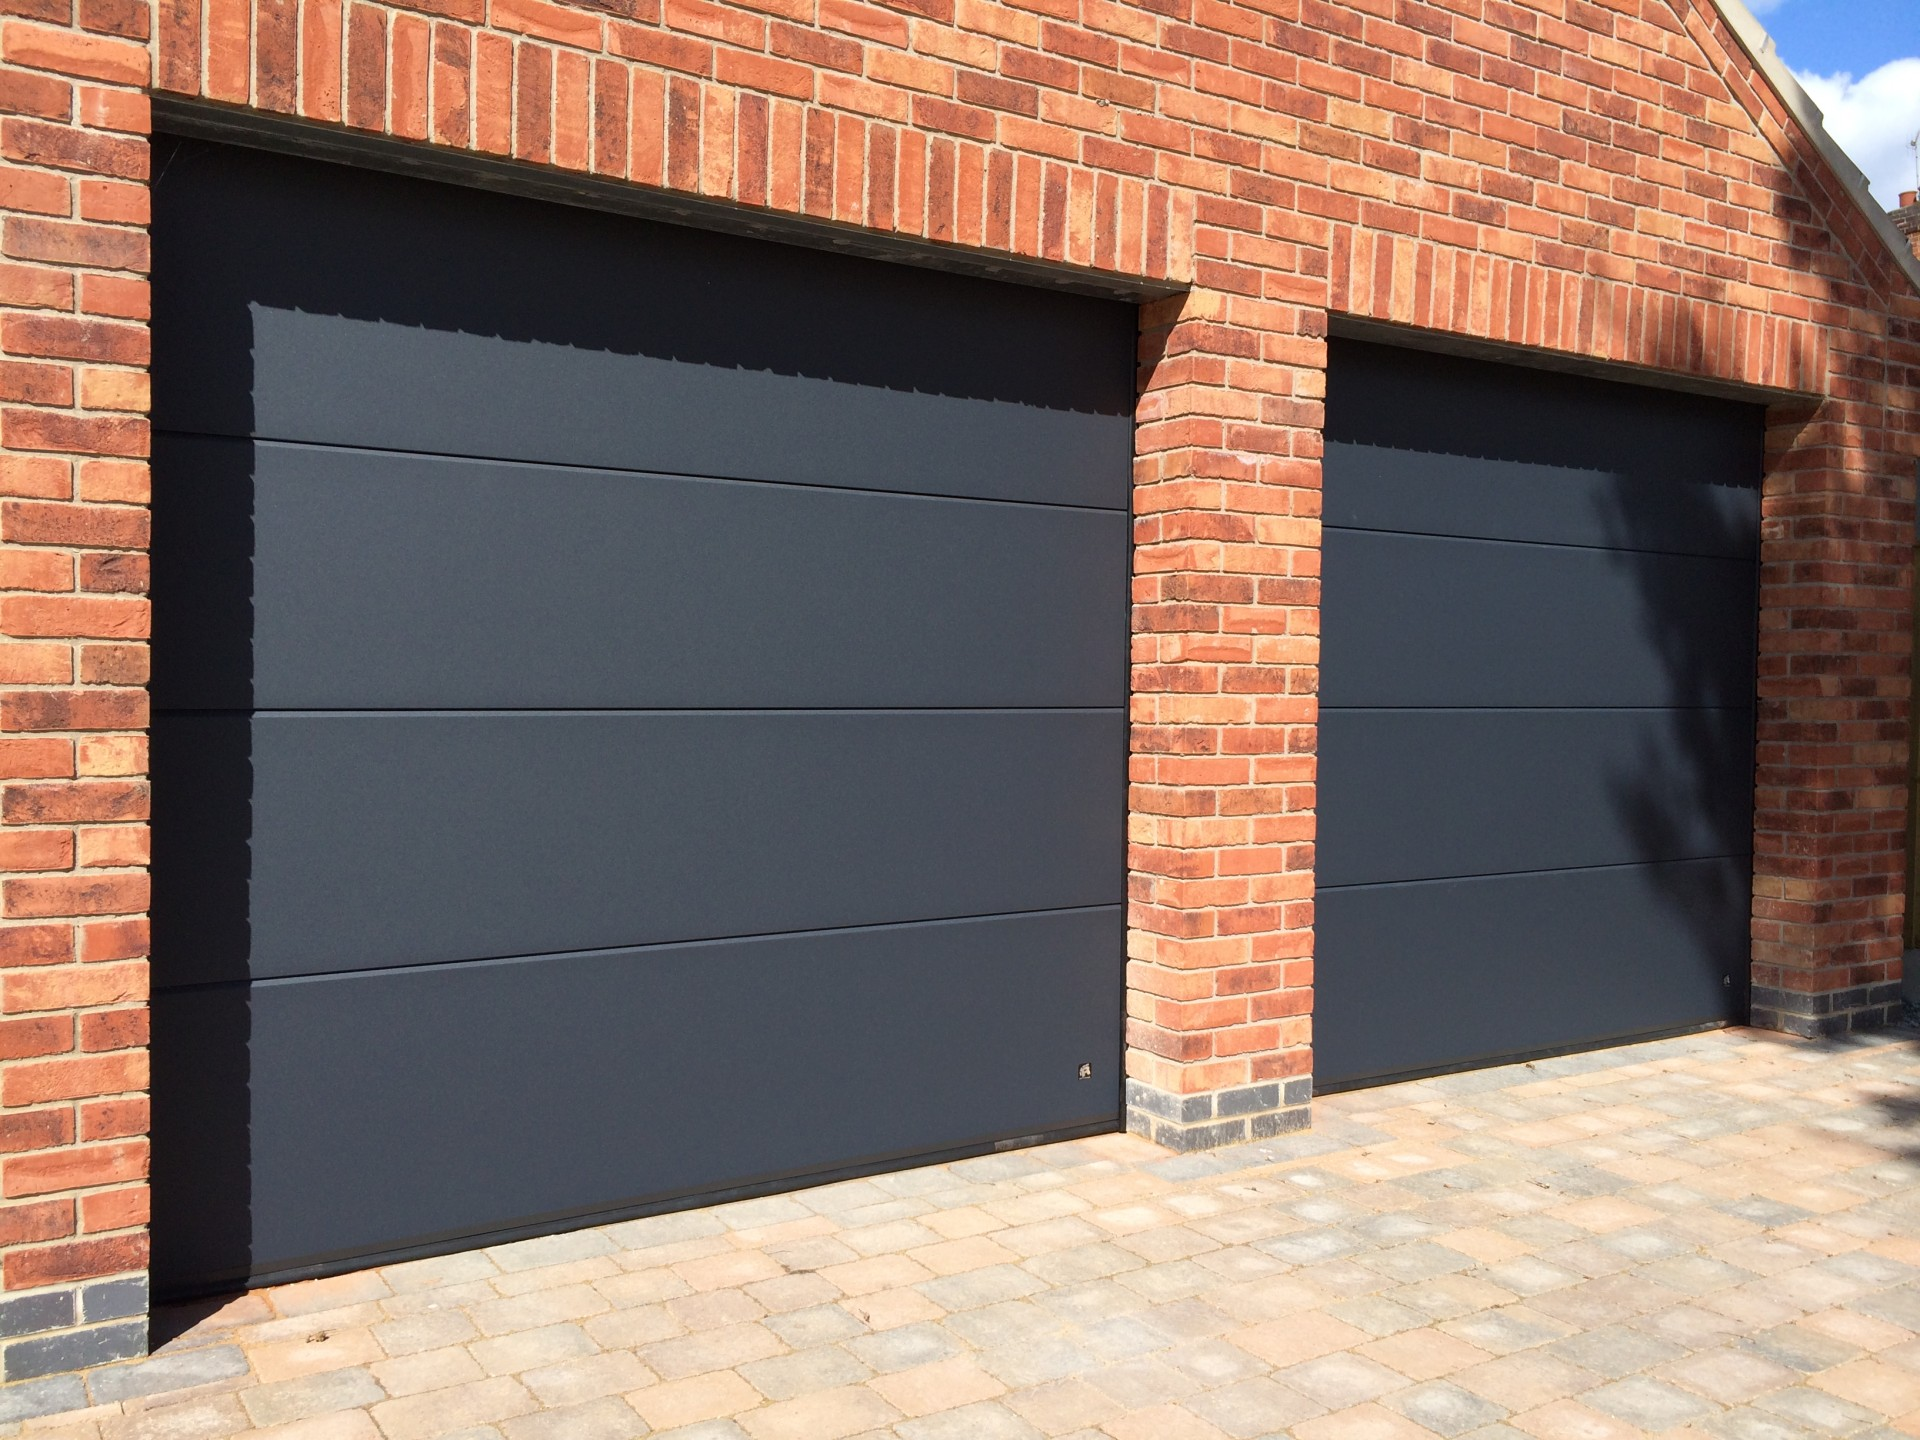 1440 #AB5D20 Doors Installs Ryterna R40 Flush Slick Style Steel Sectional Garage  pic Sectional Steel Garage Doors 35911920